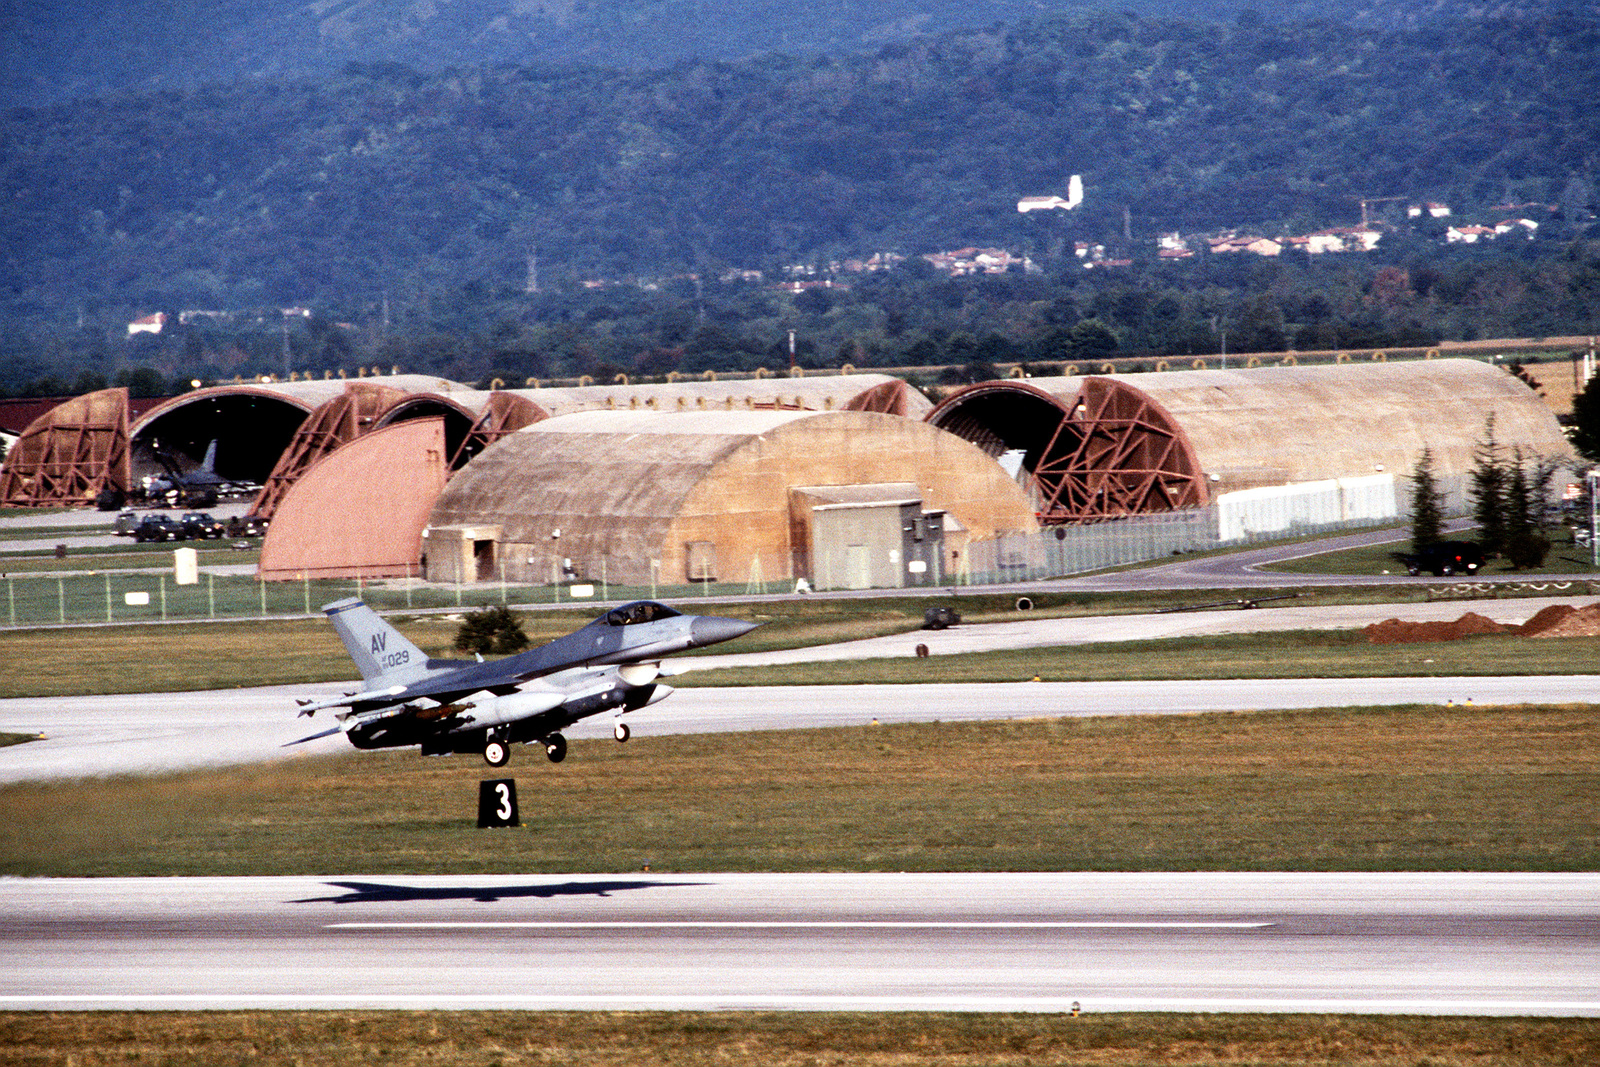 A US Air Force F-16C Fighting Falcon from the 31st Fighter